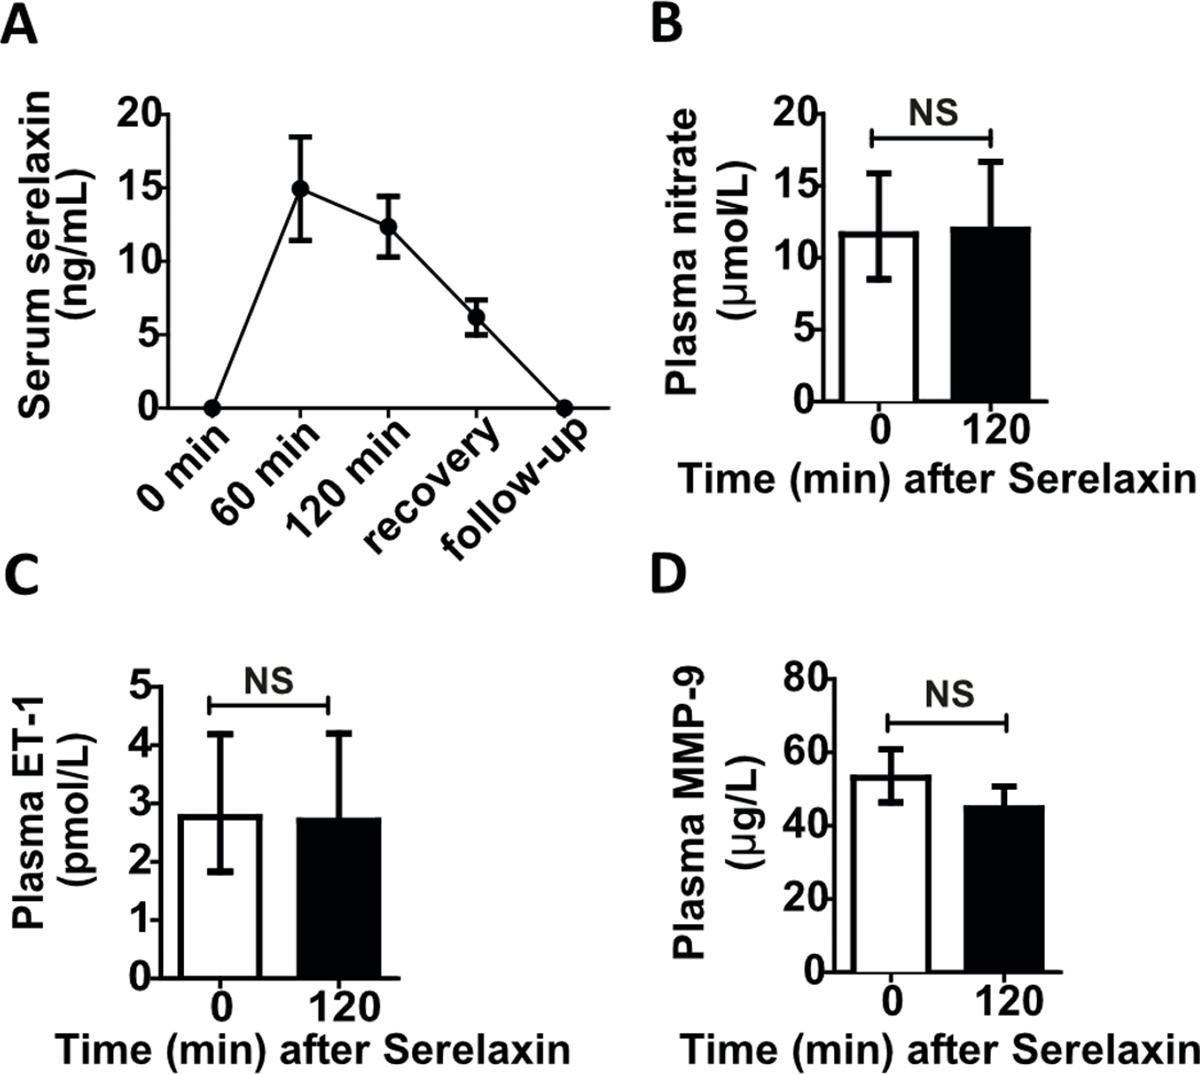 Effect of serelaxin infusion on pharmacokinetics and plasma biomarkers in patients with cirrhosis and portal hypertension.